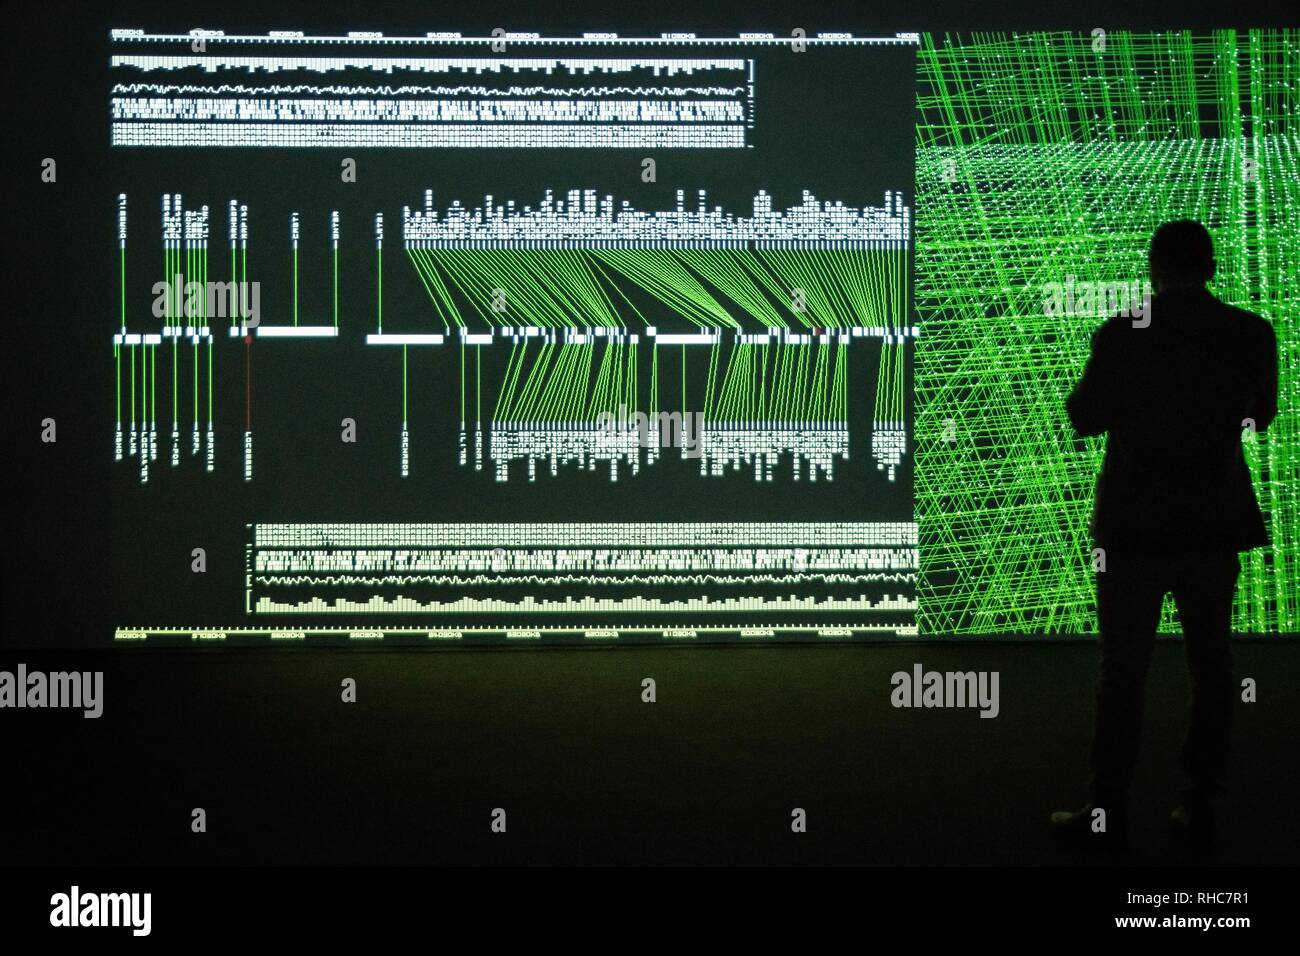 Athens, Greece. 1st Feb, 2019. A visitor seen looking at the Multimedia project Data Flux (12 XGA version) by Japanese artist Ryoji Ikeda at the Onassis Cultural Center in Athens. The Japanese artist presents an installation which challenges the limits of human perception and digital technology. With the precision of a metronome, twelve parallel video projectors synchronize with a minimalist electronic composition, turning numbers and data into the ultimate sensory experience for the visitor. Credit: ZUMA Press, Inc./Alamy Live News - Stock Image